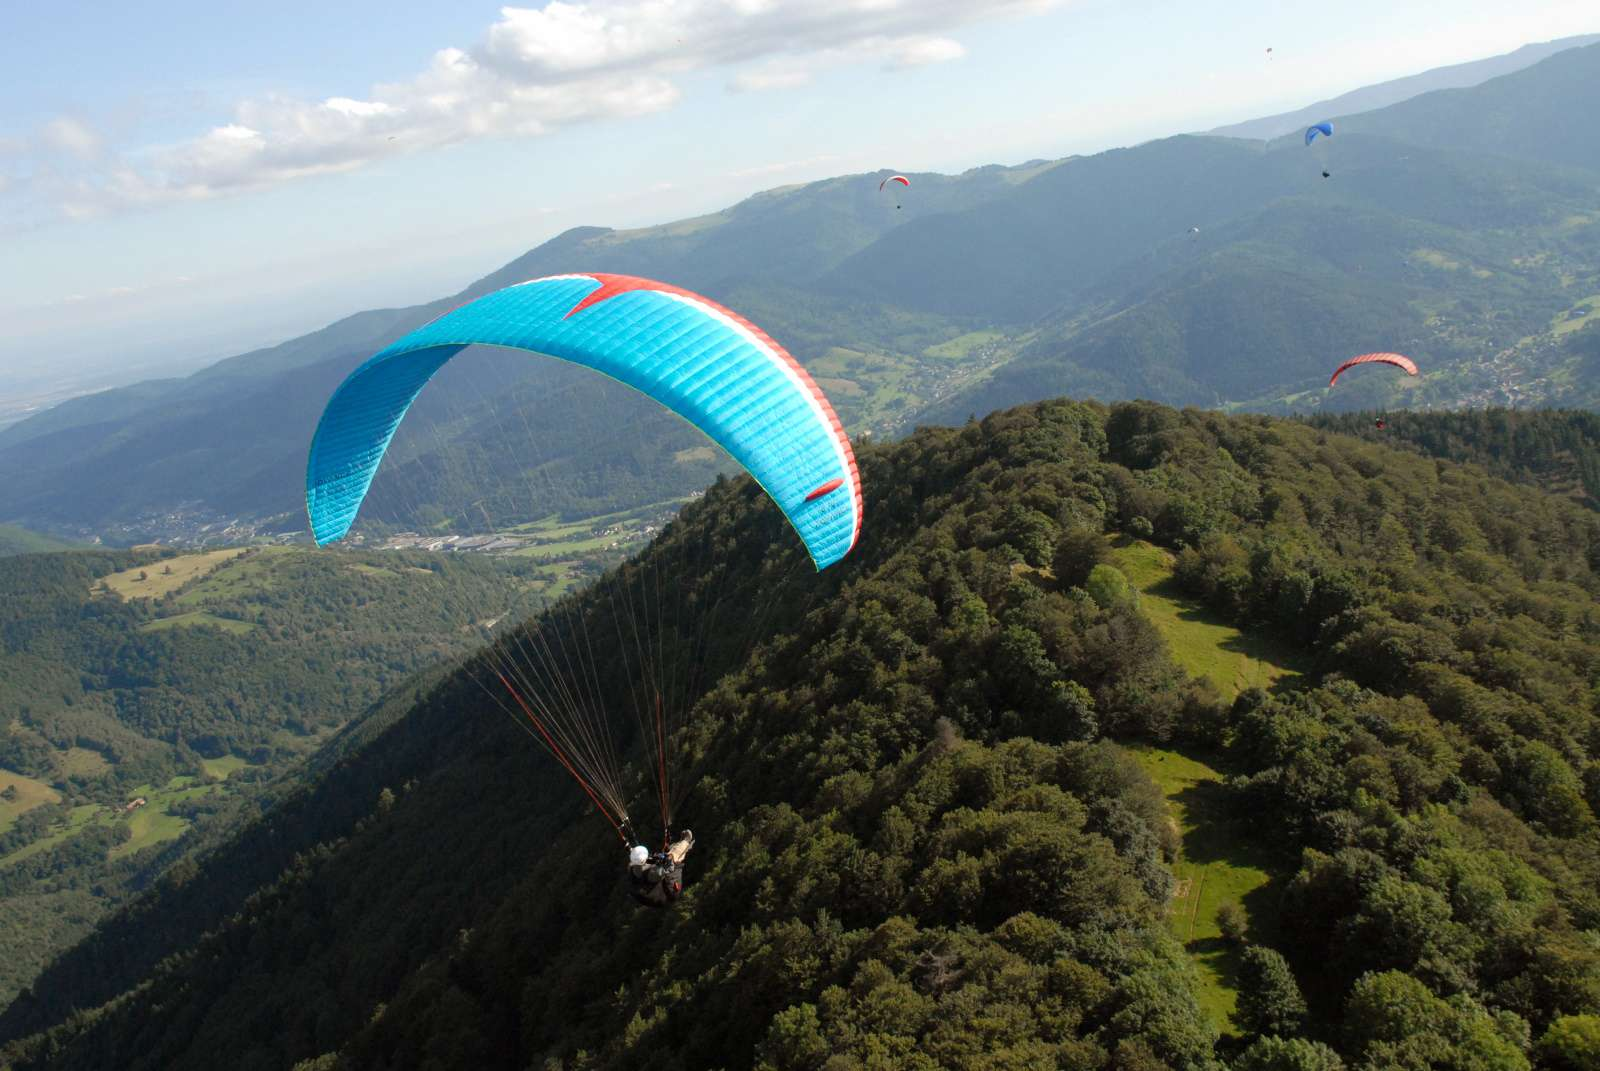 Paragliders soar over treetops in the Vosges